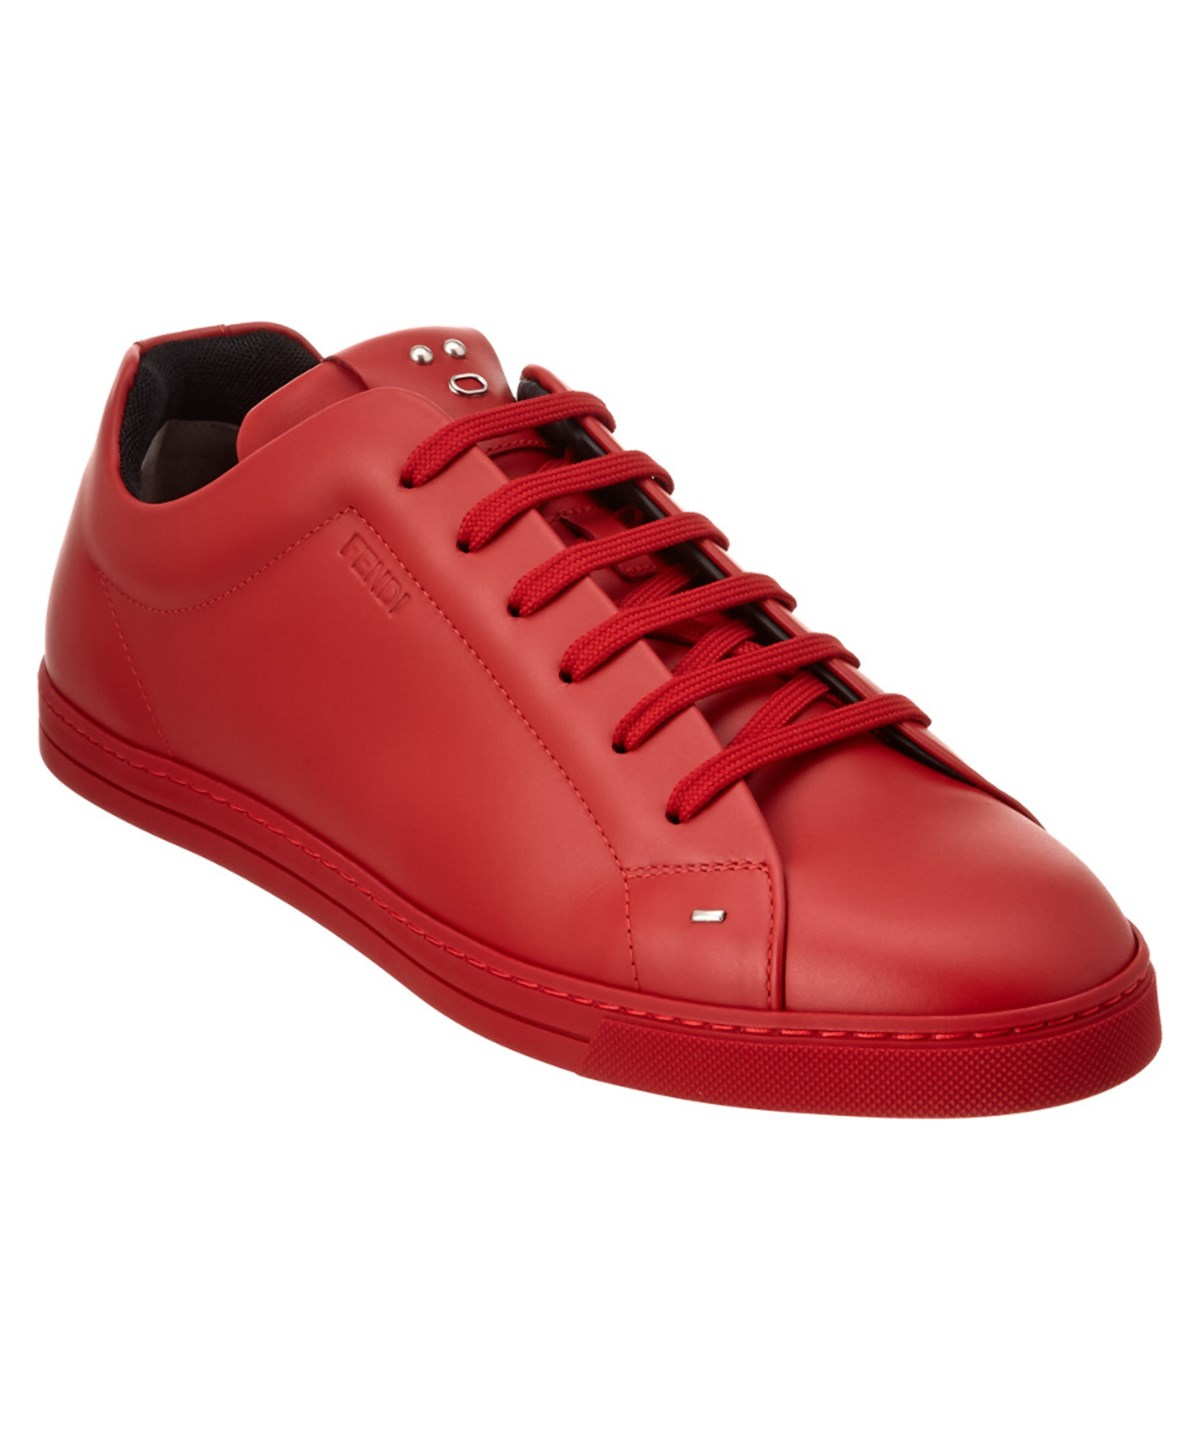 Fendi Men S Face Leather Low-Top Sneaker, Red In Scarlet-Red   ModeSens b371b8f6e0